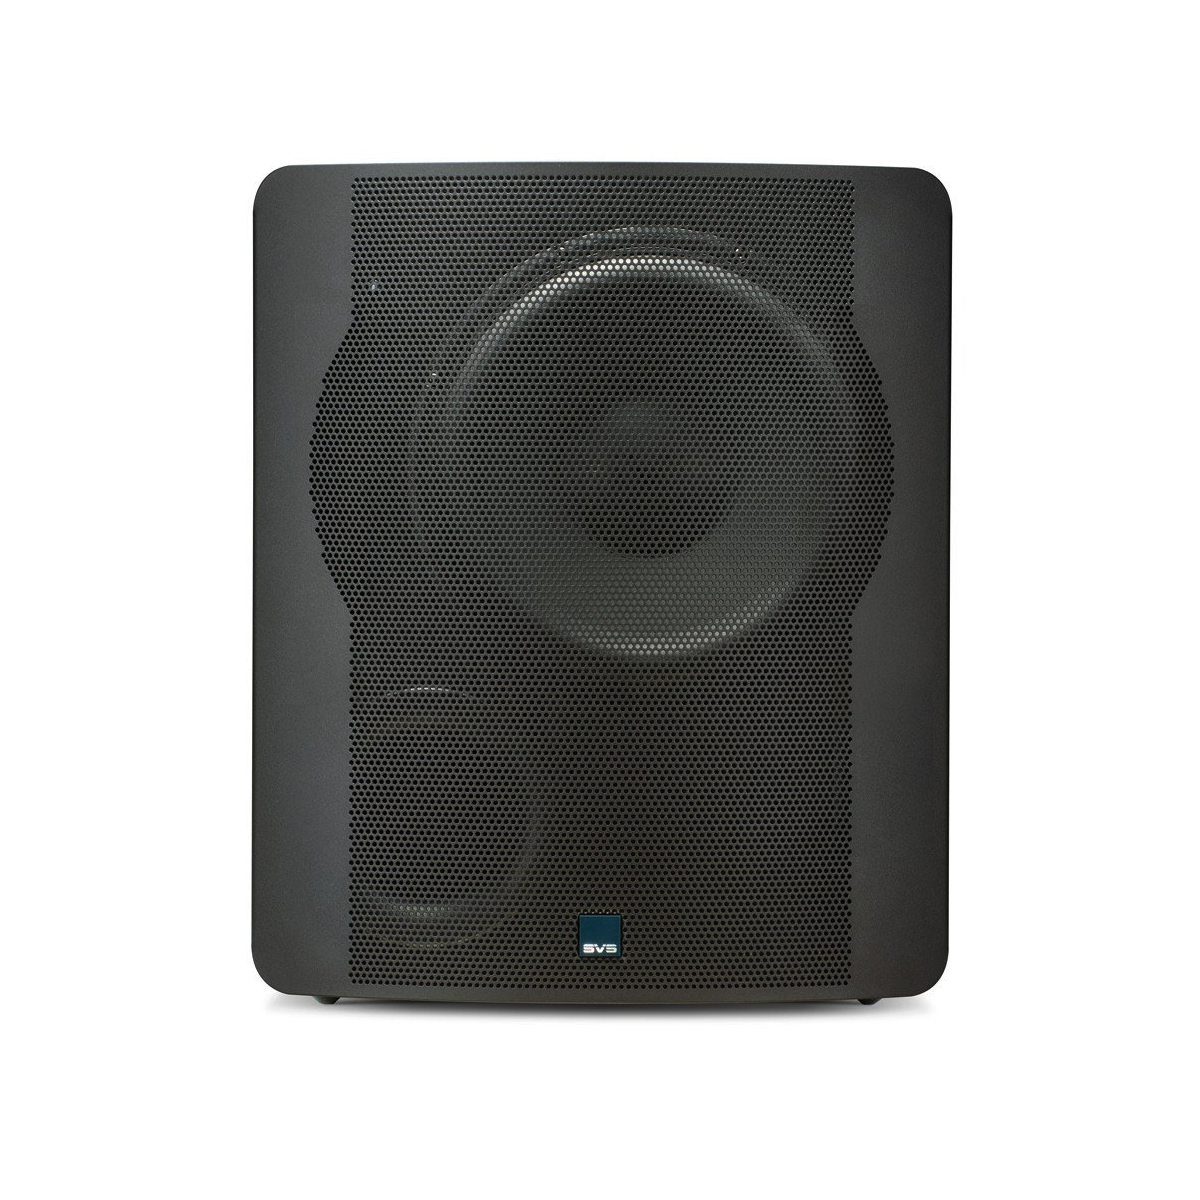 SVS Sound PB 2000 Subwoofer - Black Ash - AVStore.in